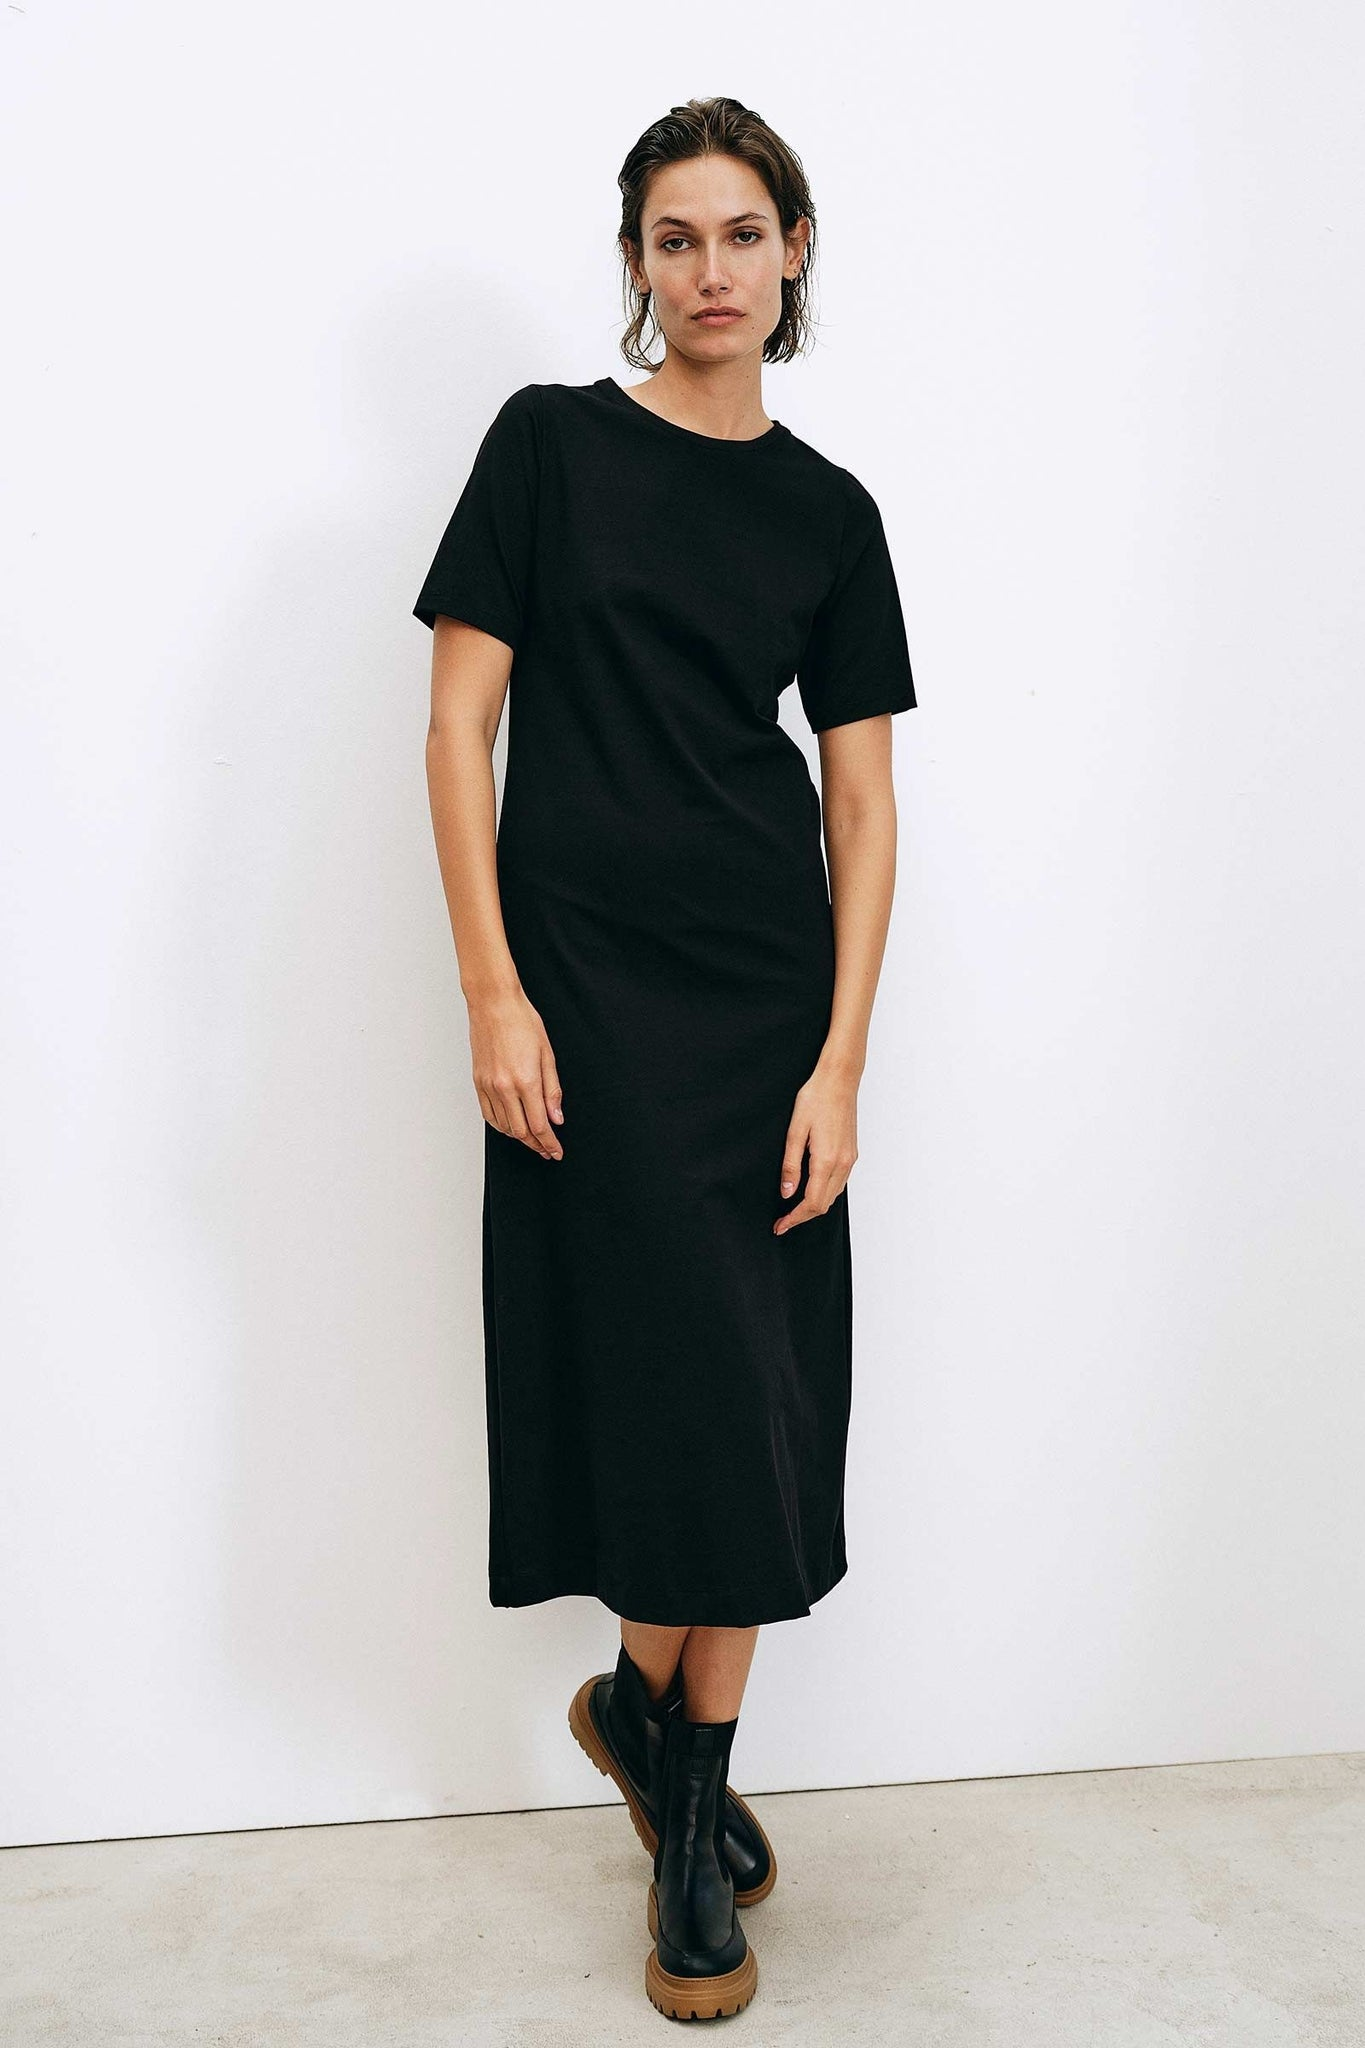 DUNNA BLACK DRESS - Les Goodies